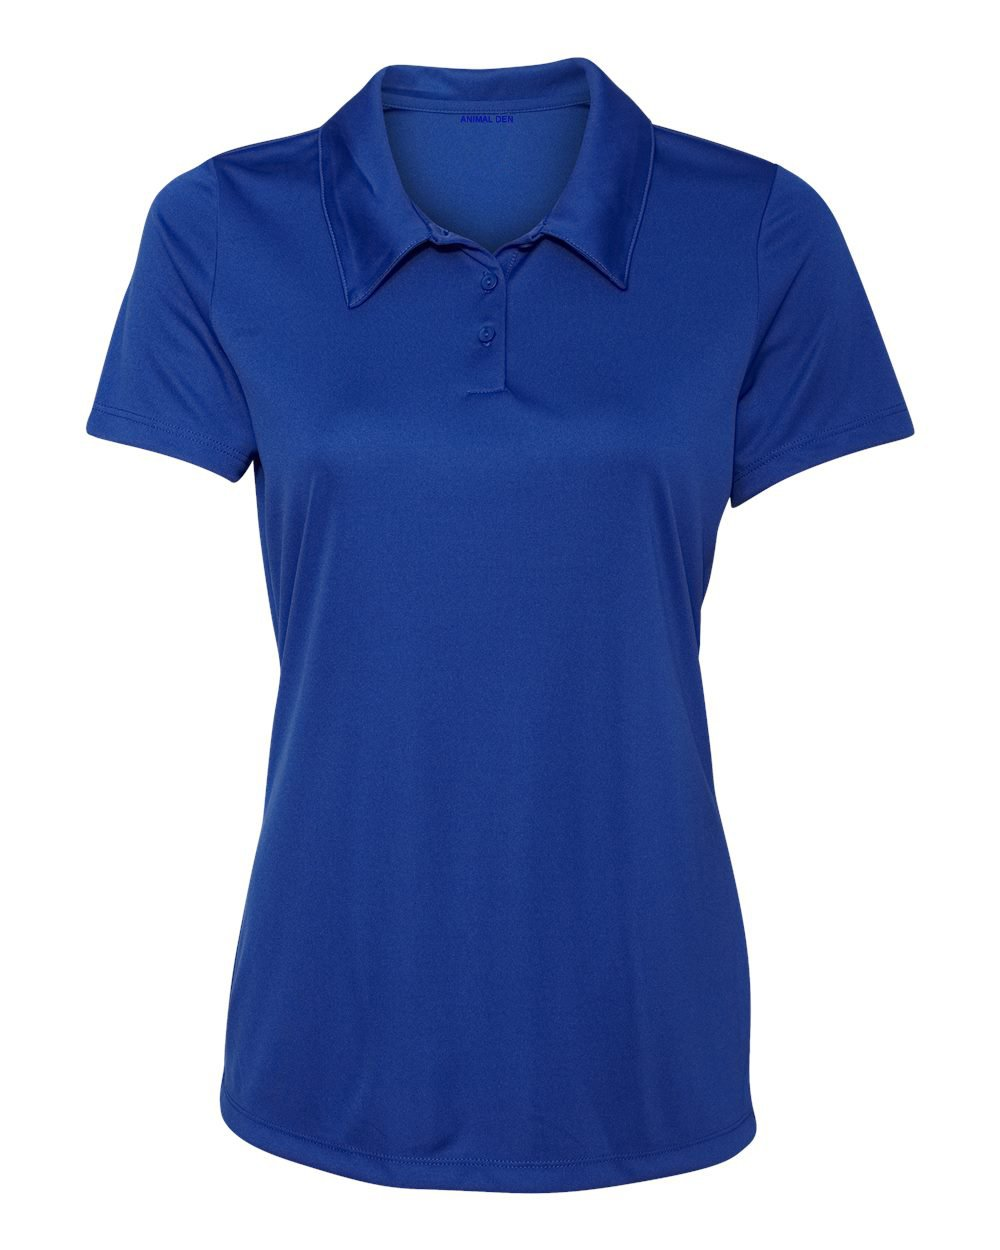 Women's Dry-Fit Golf Polo Shirts 3-Button Golf Polo's in 20 Colors XS-3XL Shirt ROYAL-XL by Animal Den